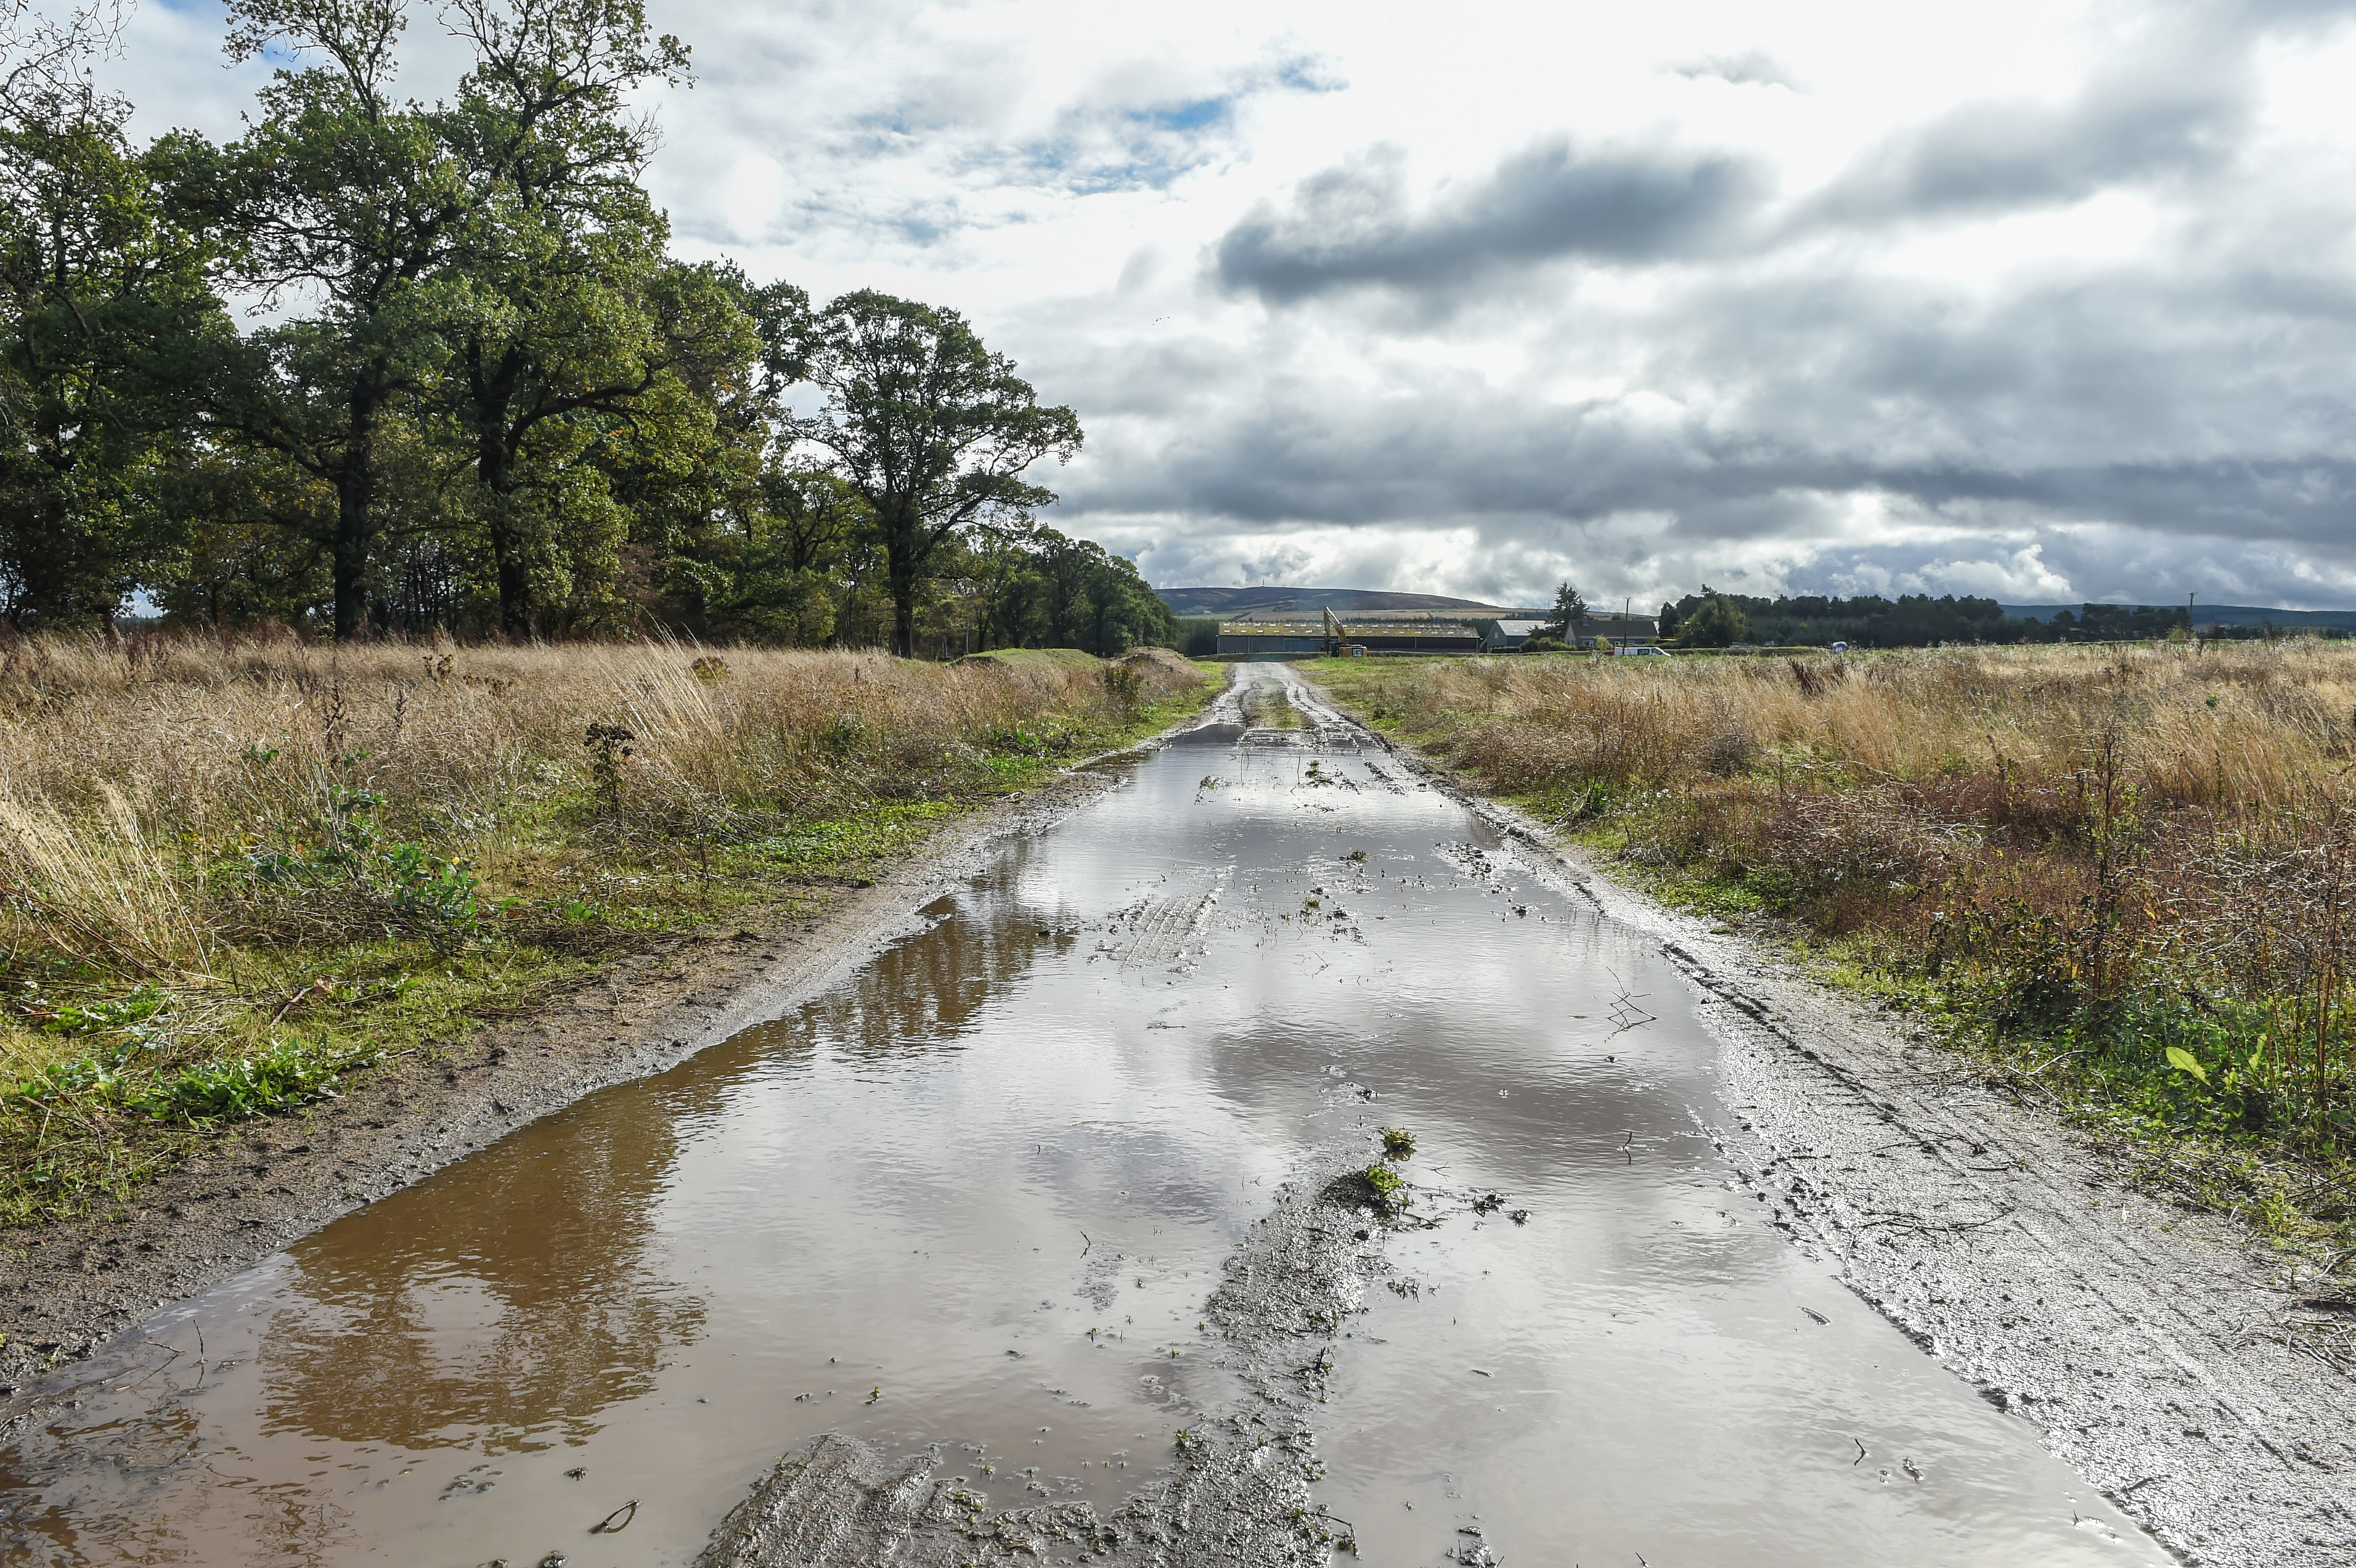 Concerns have been raised about the condition of the road leading to the Linkwood Primary School site.